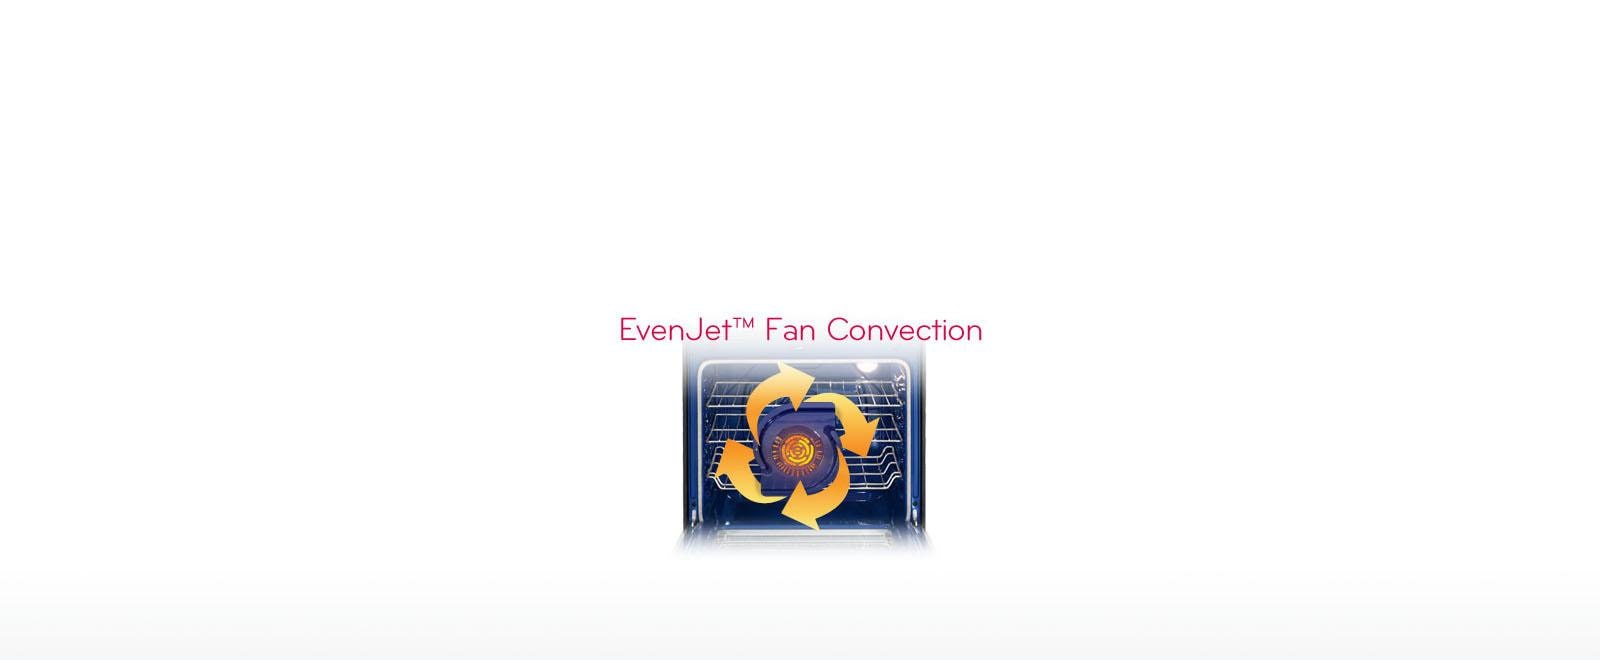 EvenJet-Fan-Convection-465x265_FT20007083_M01A_1530078364494